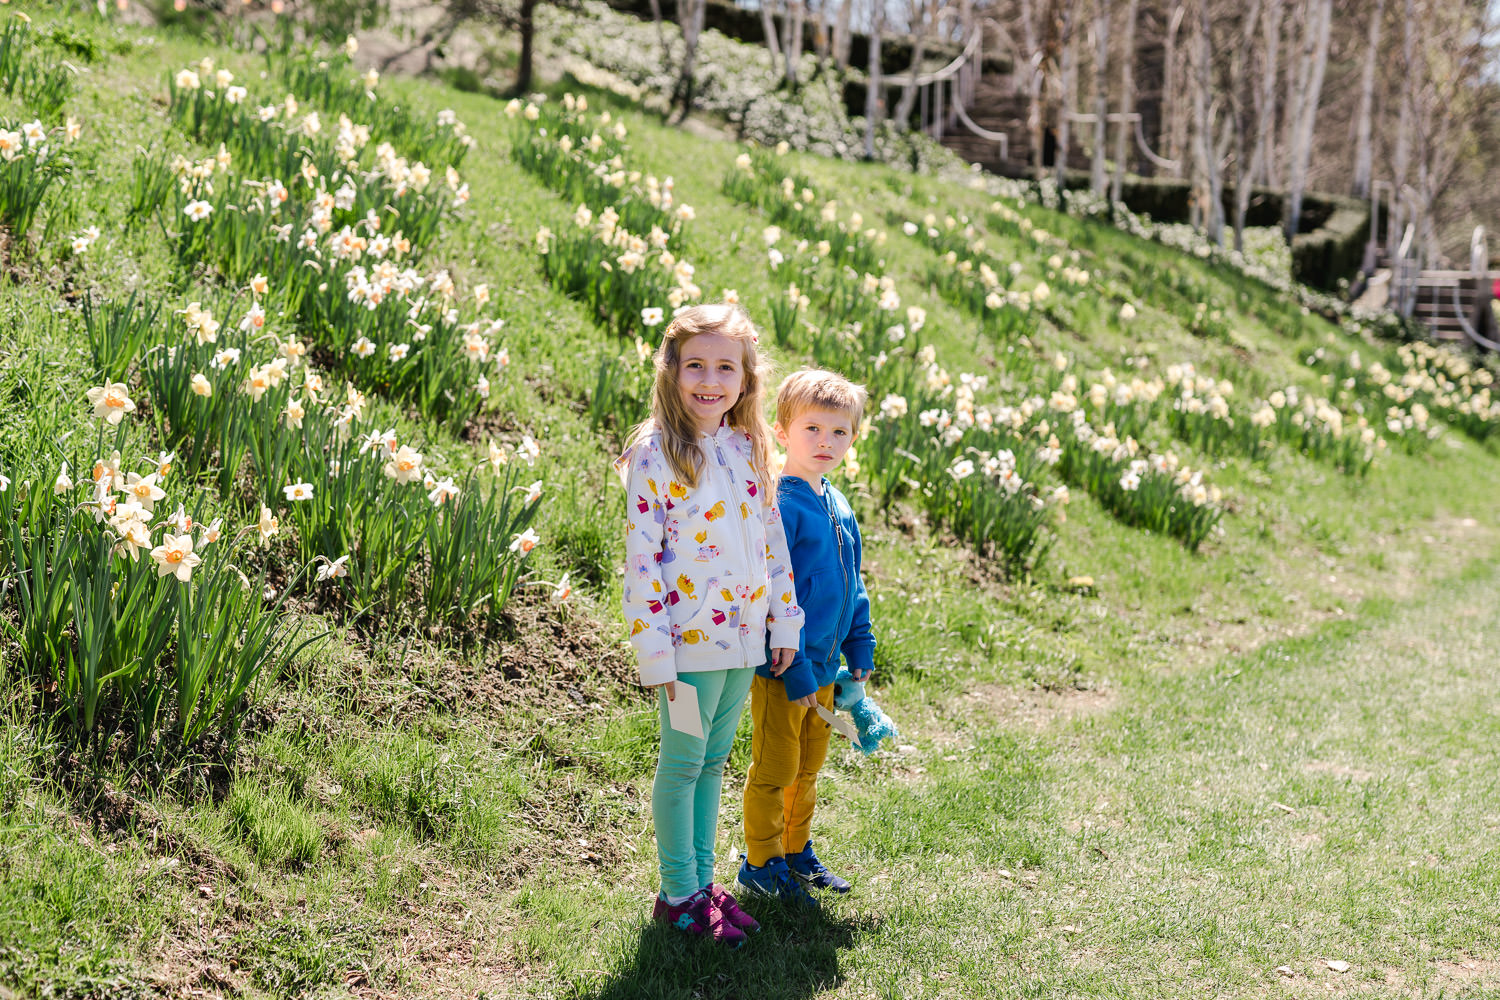 Two children at Naumkeag by the daffodils.